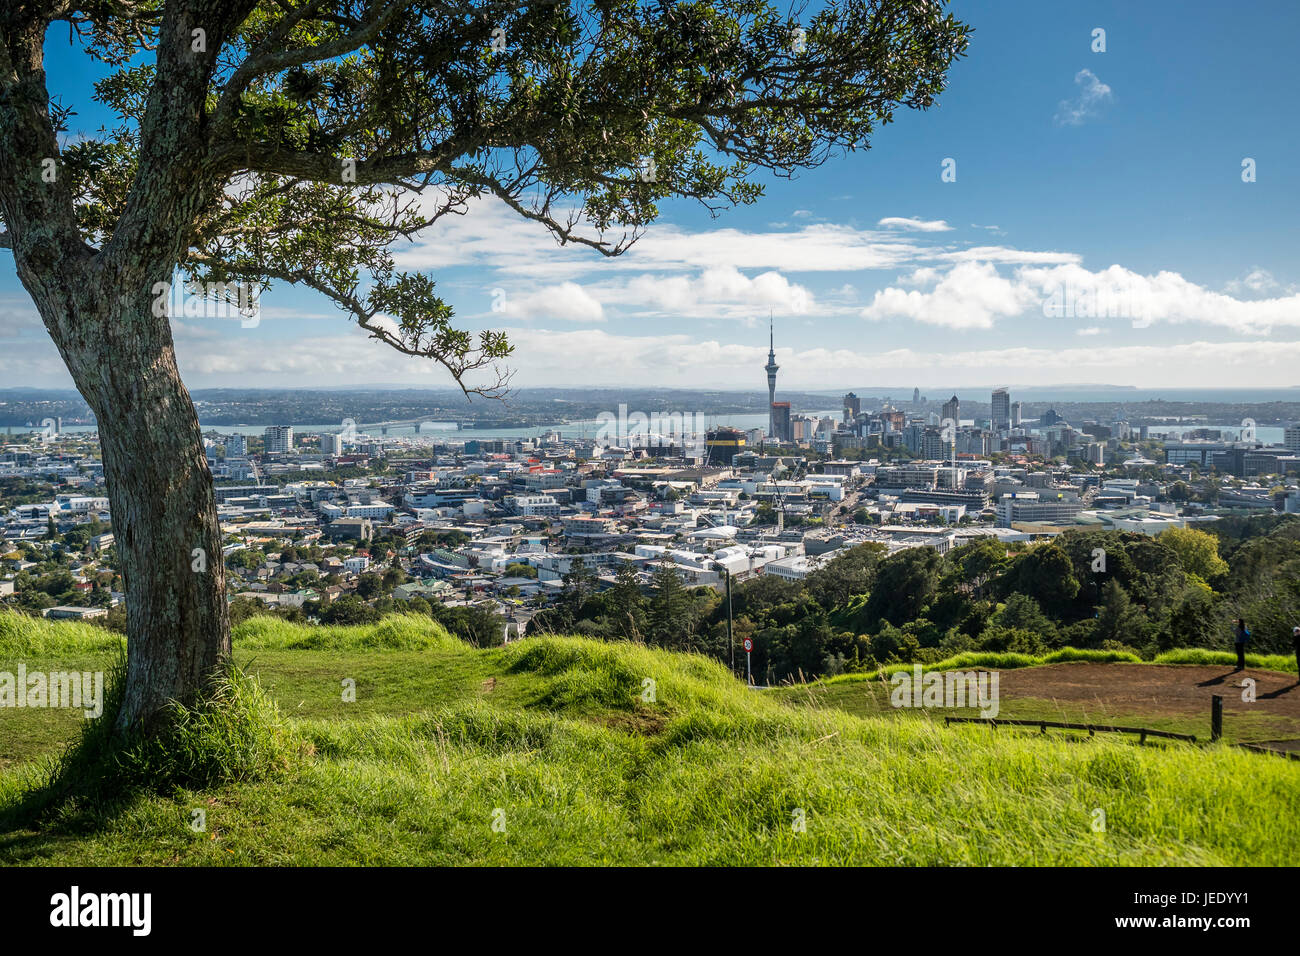 New Zealand, North Island, Mount Eden, Auckland, cityscape - Stock Image